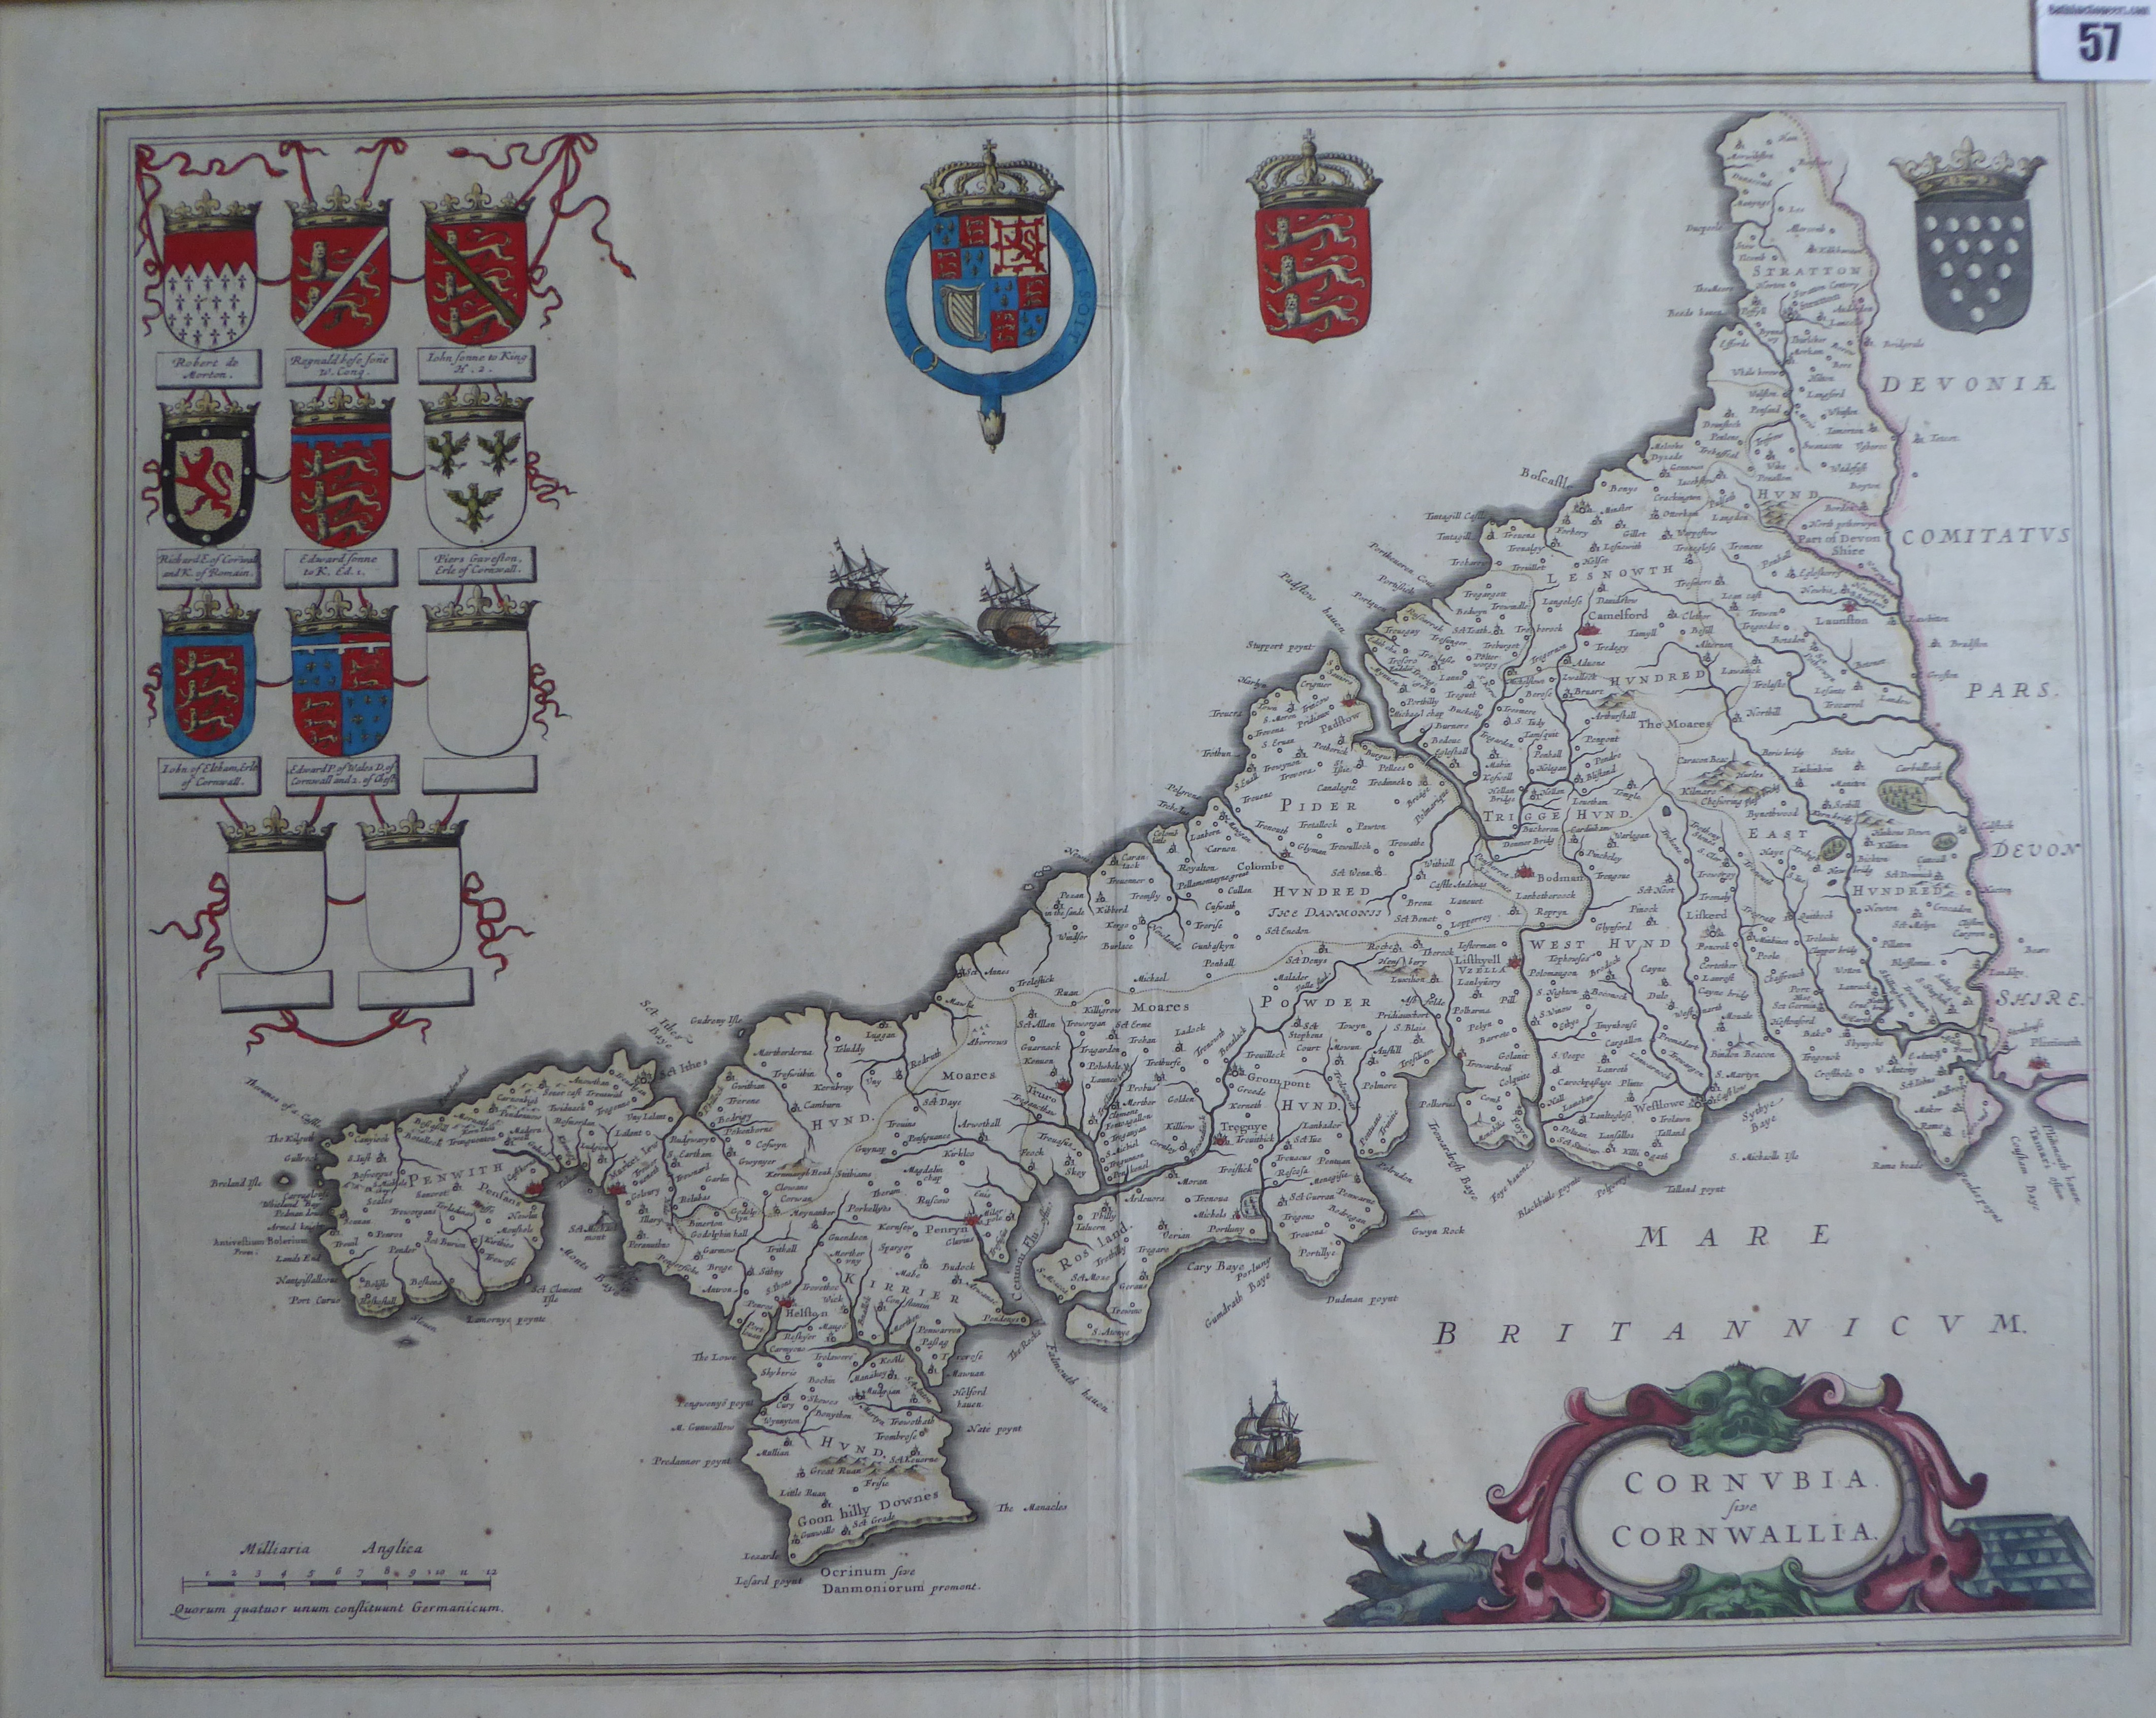 Lot 57 - A C17th hand coloured engraved map of Cornwall 1647 edition by William Jousz Blaeu